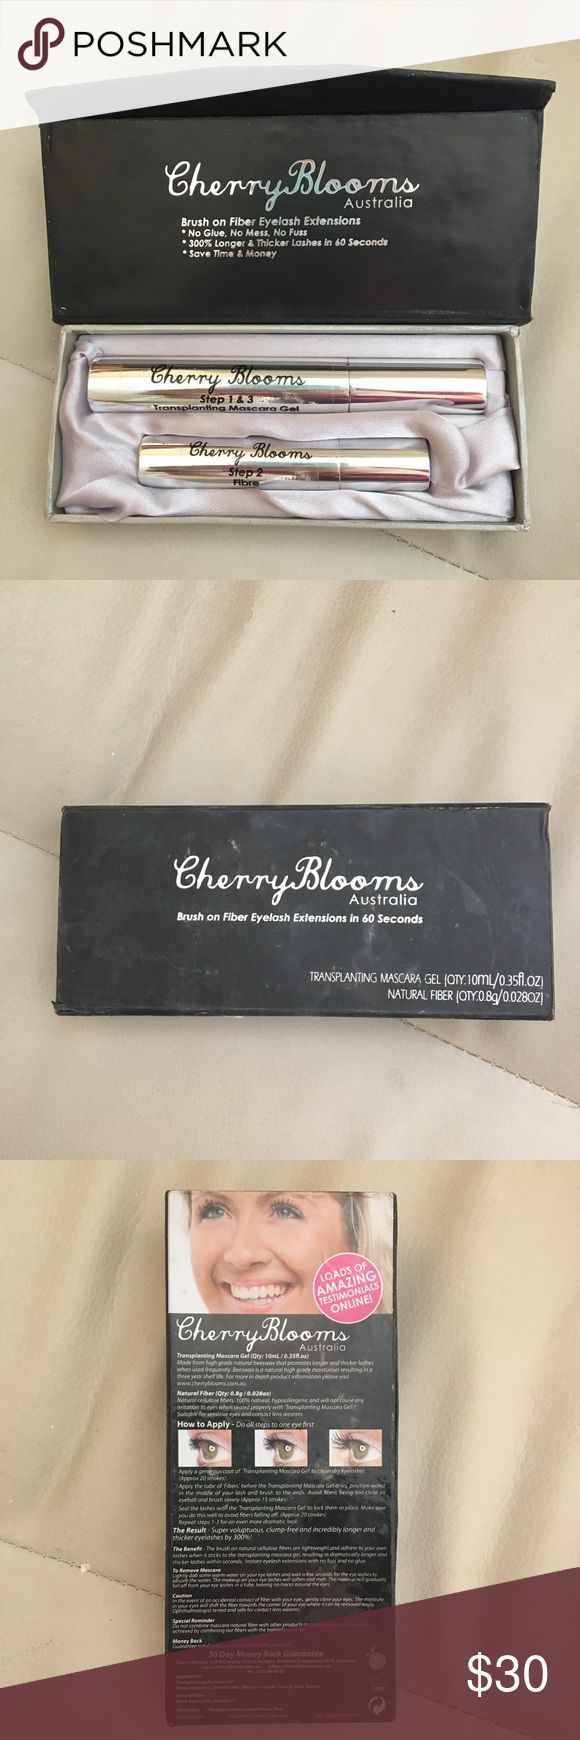 Cherry blooms Australia brush on fiber eyelash 2 step brush on eyelash extensions. Used.2 times. It works really well! I don't use much because my eyelashes are pretty long naturally. Makeup Mascara